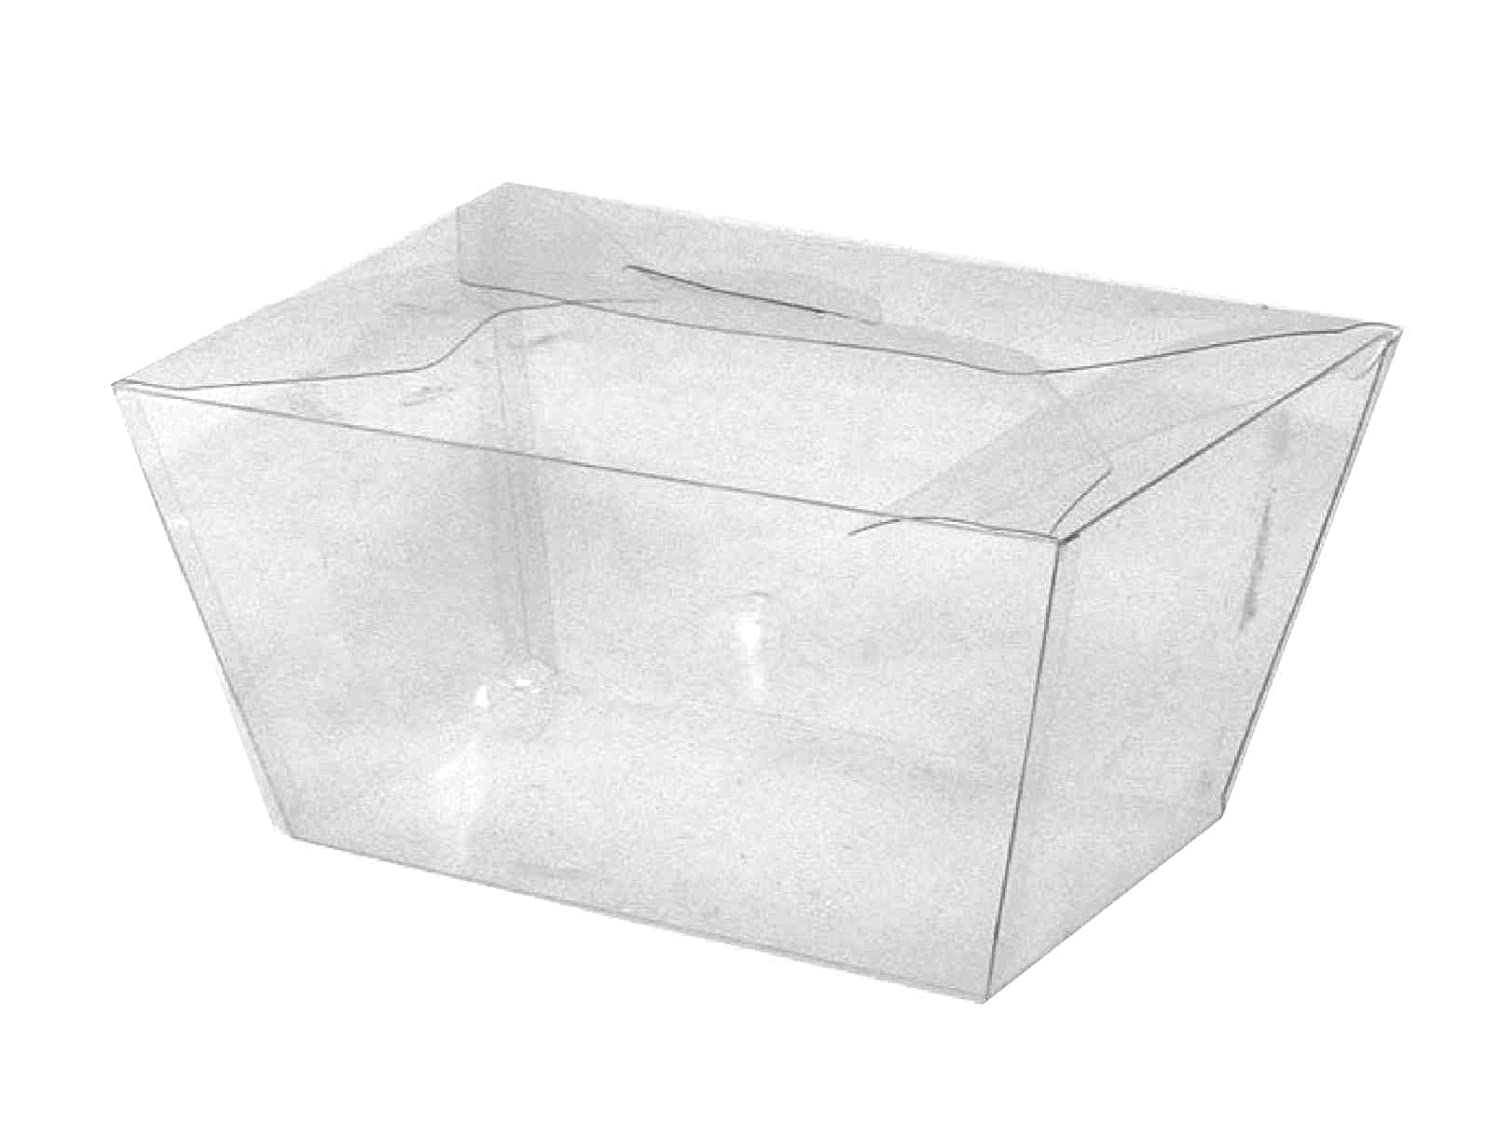 Choice-Pac N-31 Top-Opening, Tapered Rectangle Deli Box (Case of